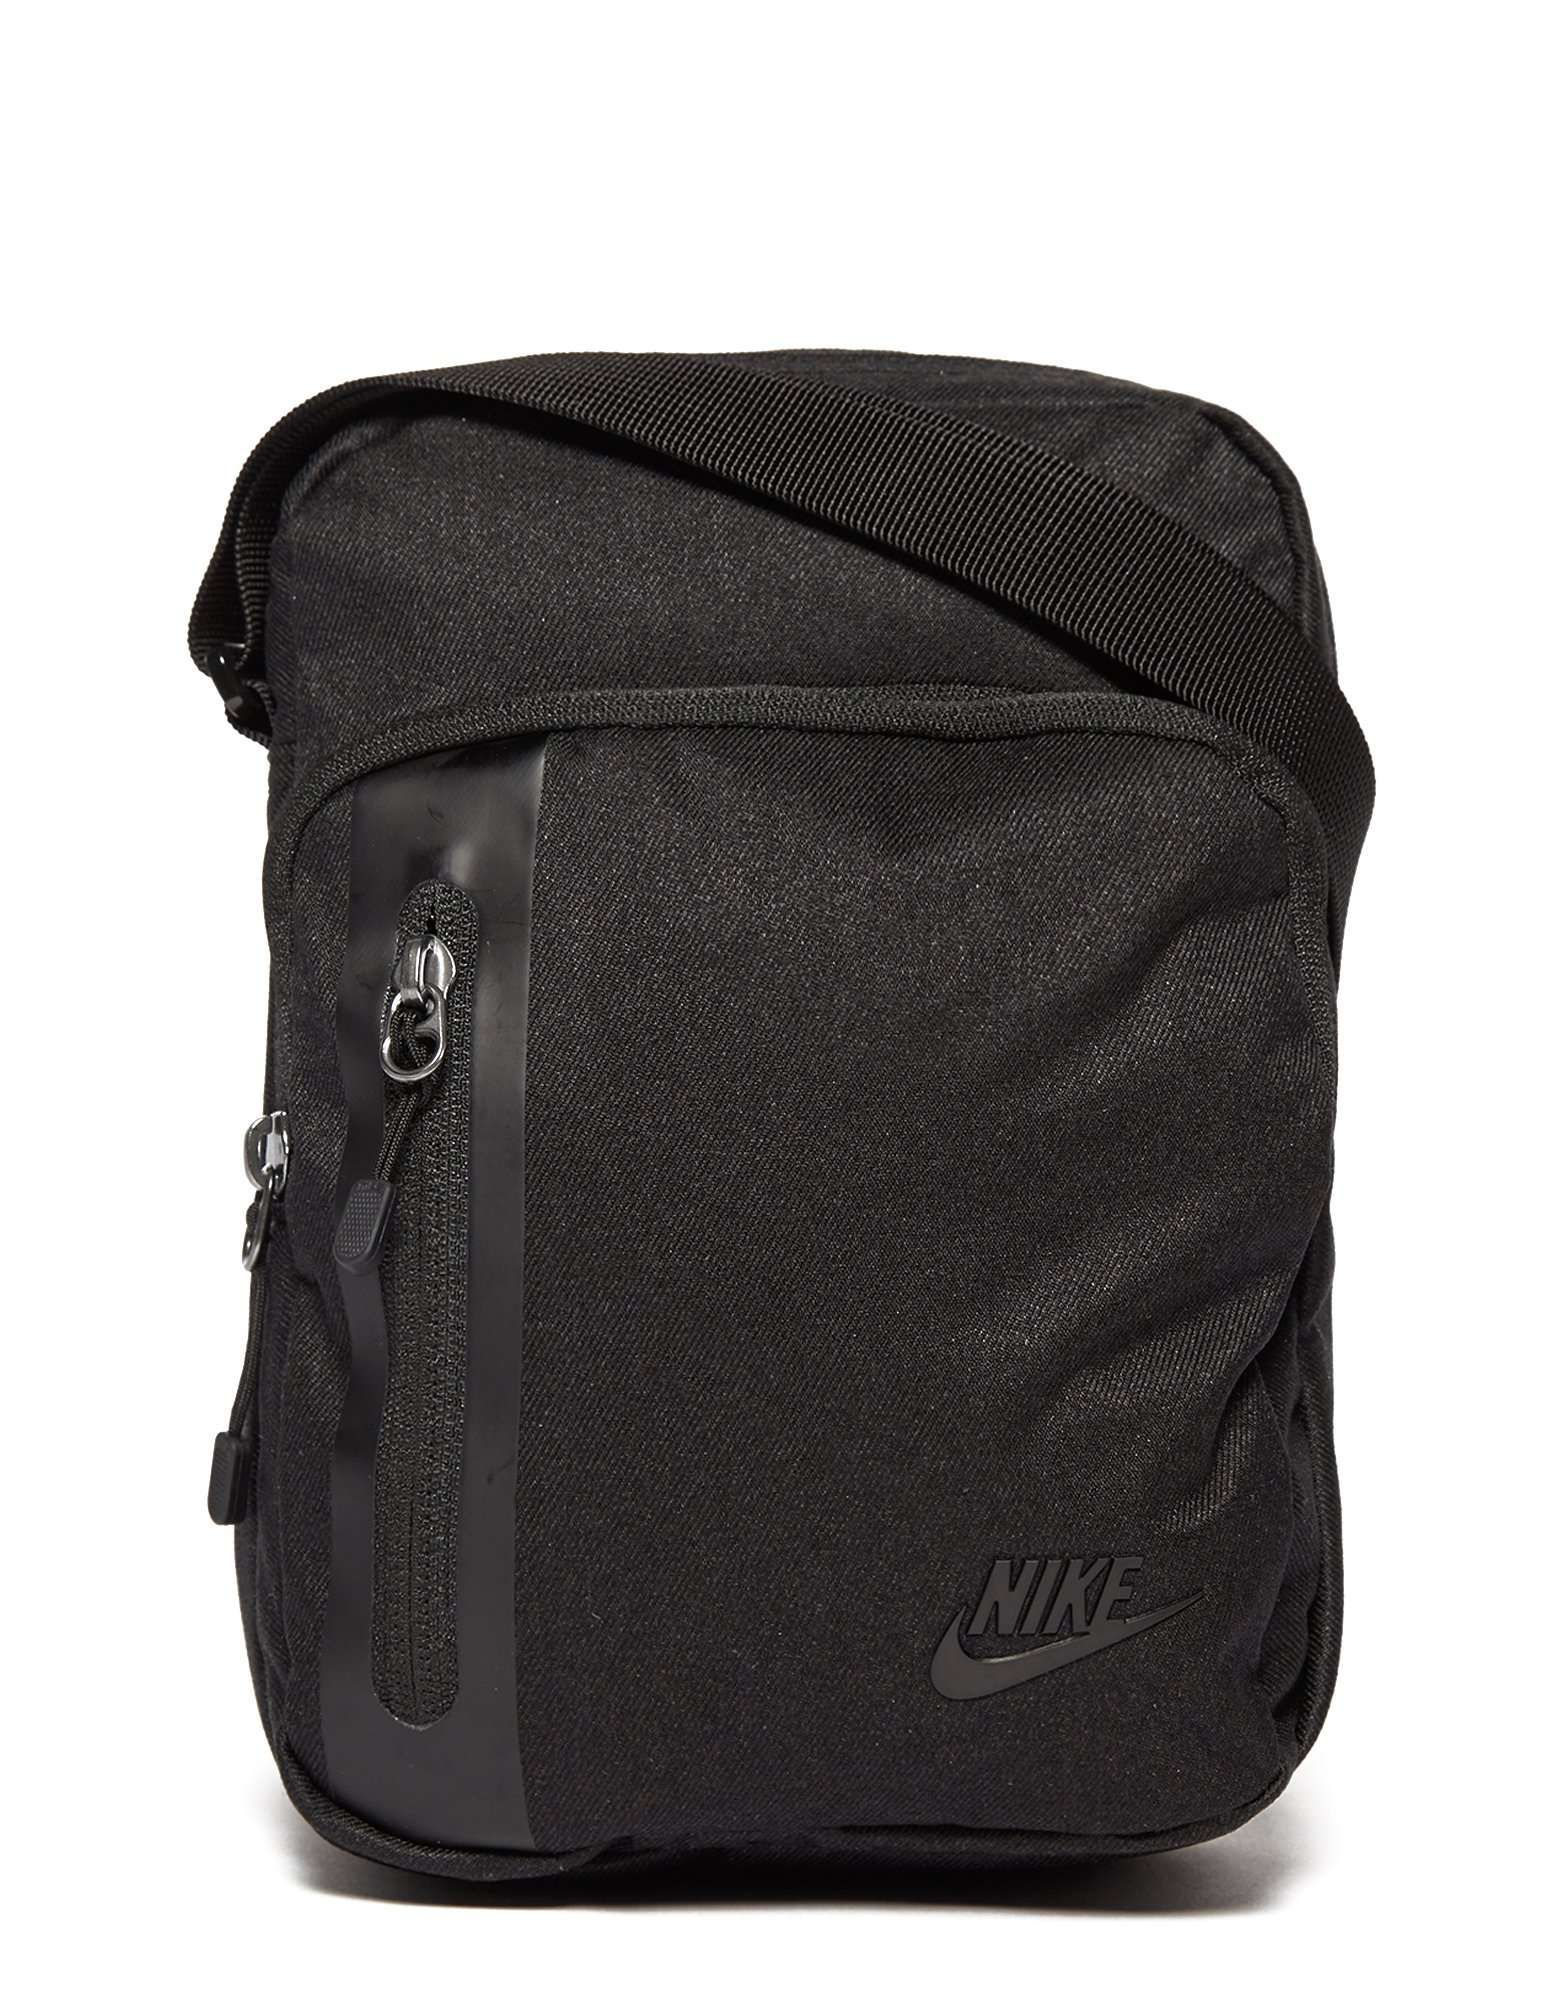 instinto Red Sombra  Nike Core Small Crossbody Bag - Shop online for Nike Core Small Crossbody  Bag with JD Sports, the UK's leading sports fa…   Crossbody bag, Small  crossbody bag, Bags